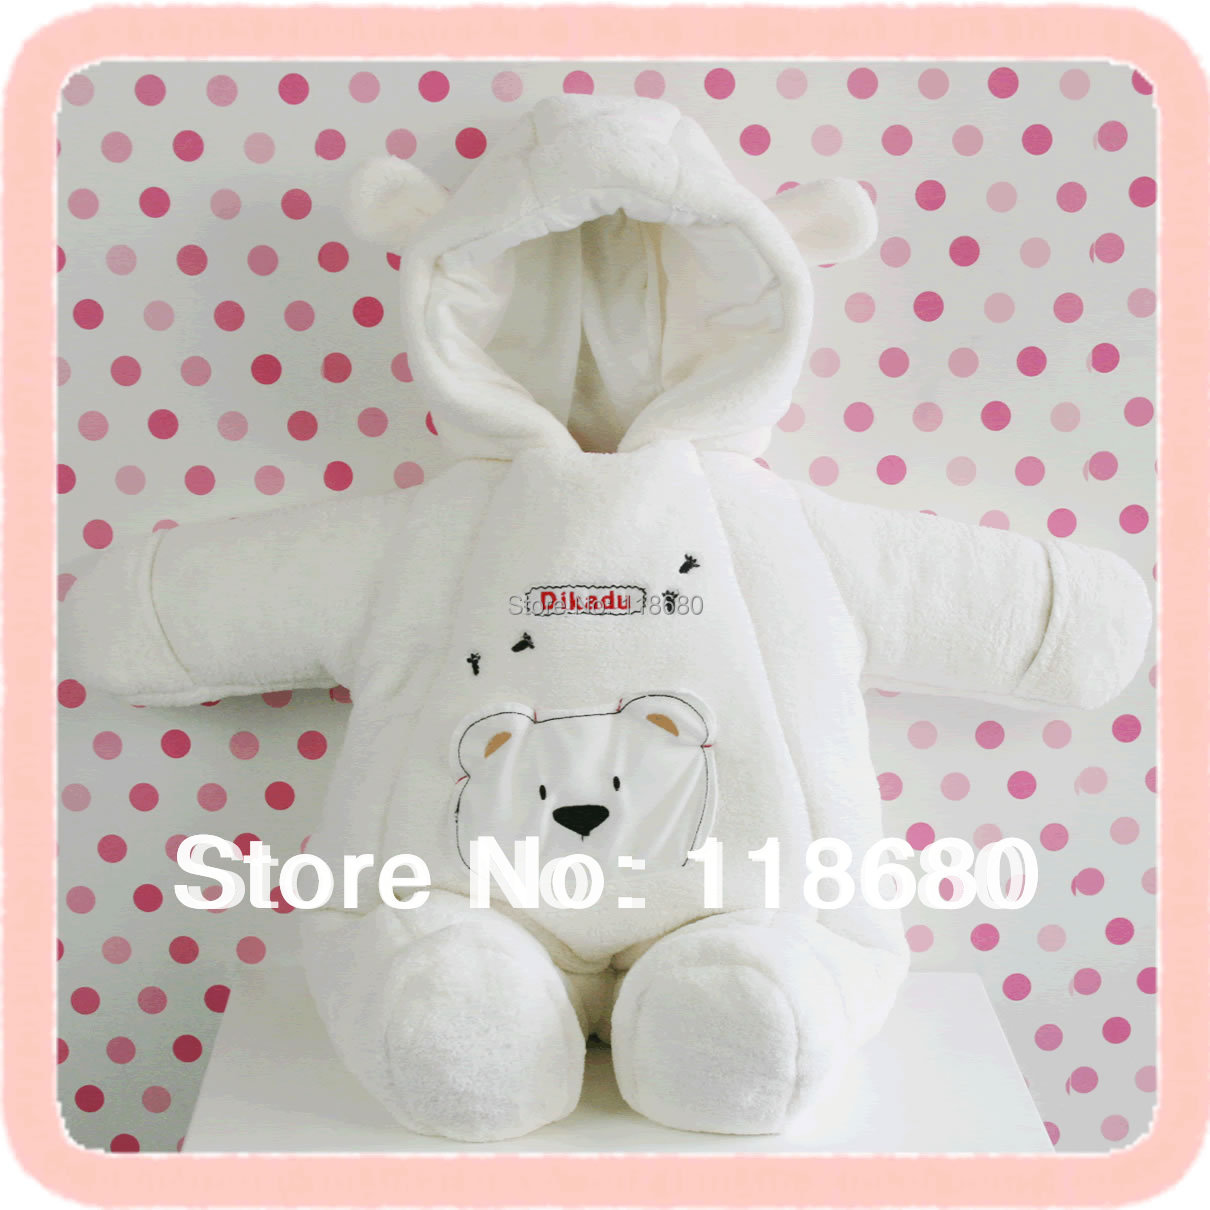 Free shipping new 2014 autumn Winter romper baby clothing thick warm newborn overall baby boy / girl cotton rompers baby wear new 2014 autumn winter baby